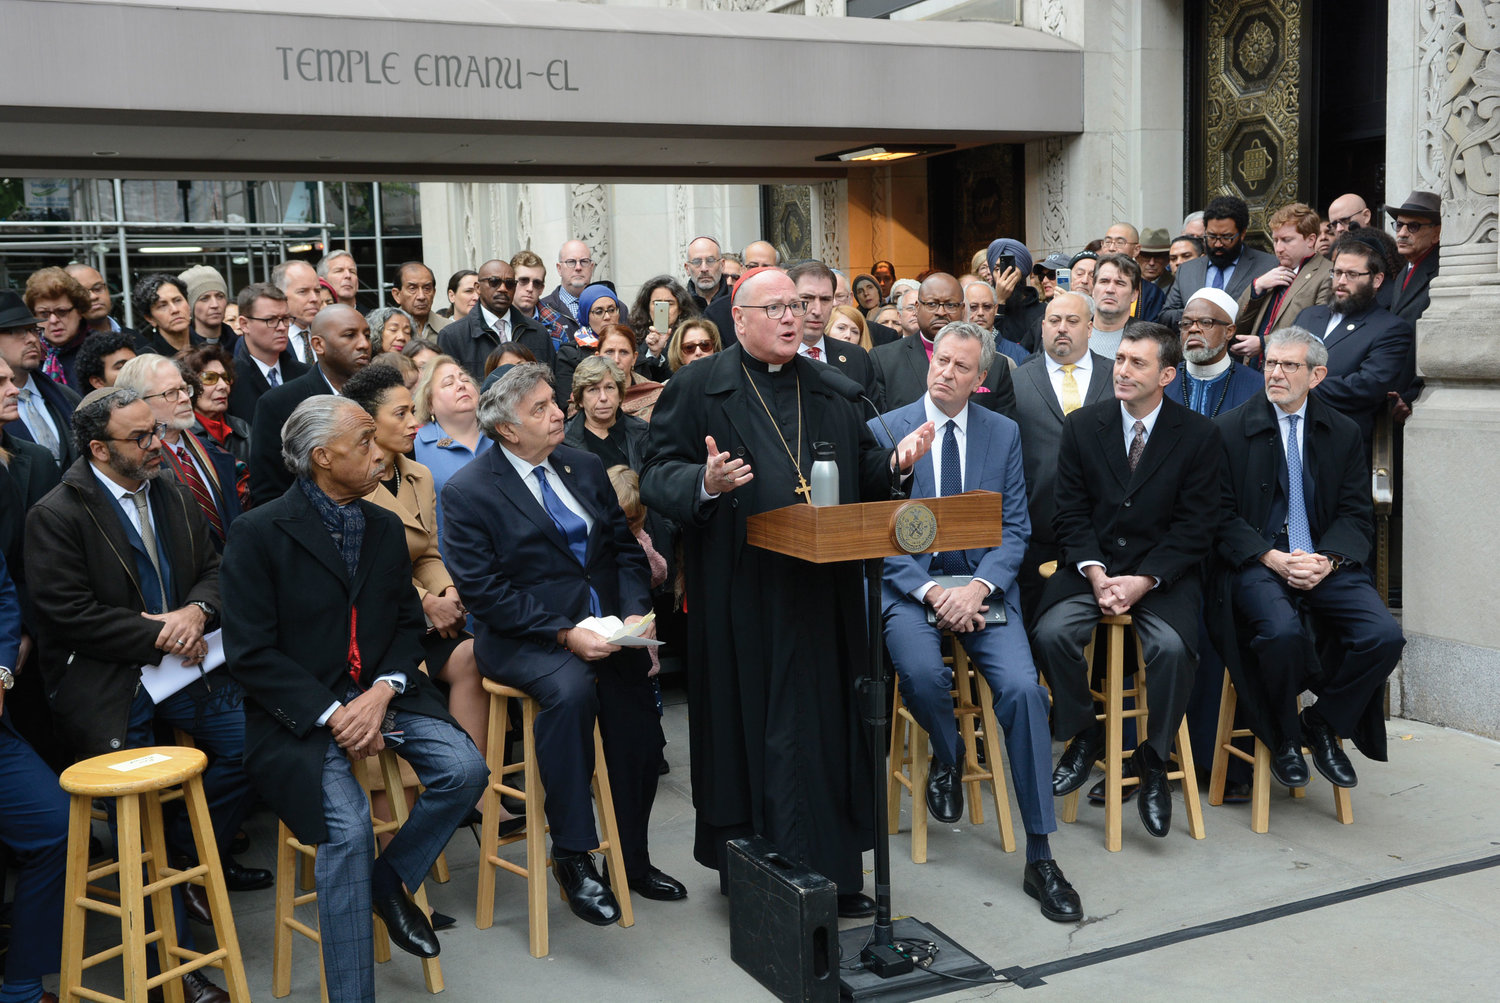 Cardinal Dolan delivers remarks at a press conference outside Temple Emanu-El on Manhattan's Upper East Side on Oct. 28. To the cardinal's immediate left are Rev. Al Sharpton and Rabbi Joseph Potasnik. At his immediate right are Mayor Bill de Blasio and Rabbi Joshua Davidson. Seated at far right is Rabbi Michael Miller, executive vice-president and CEO of the Jewish Community Relations Council of New York.